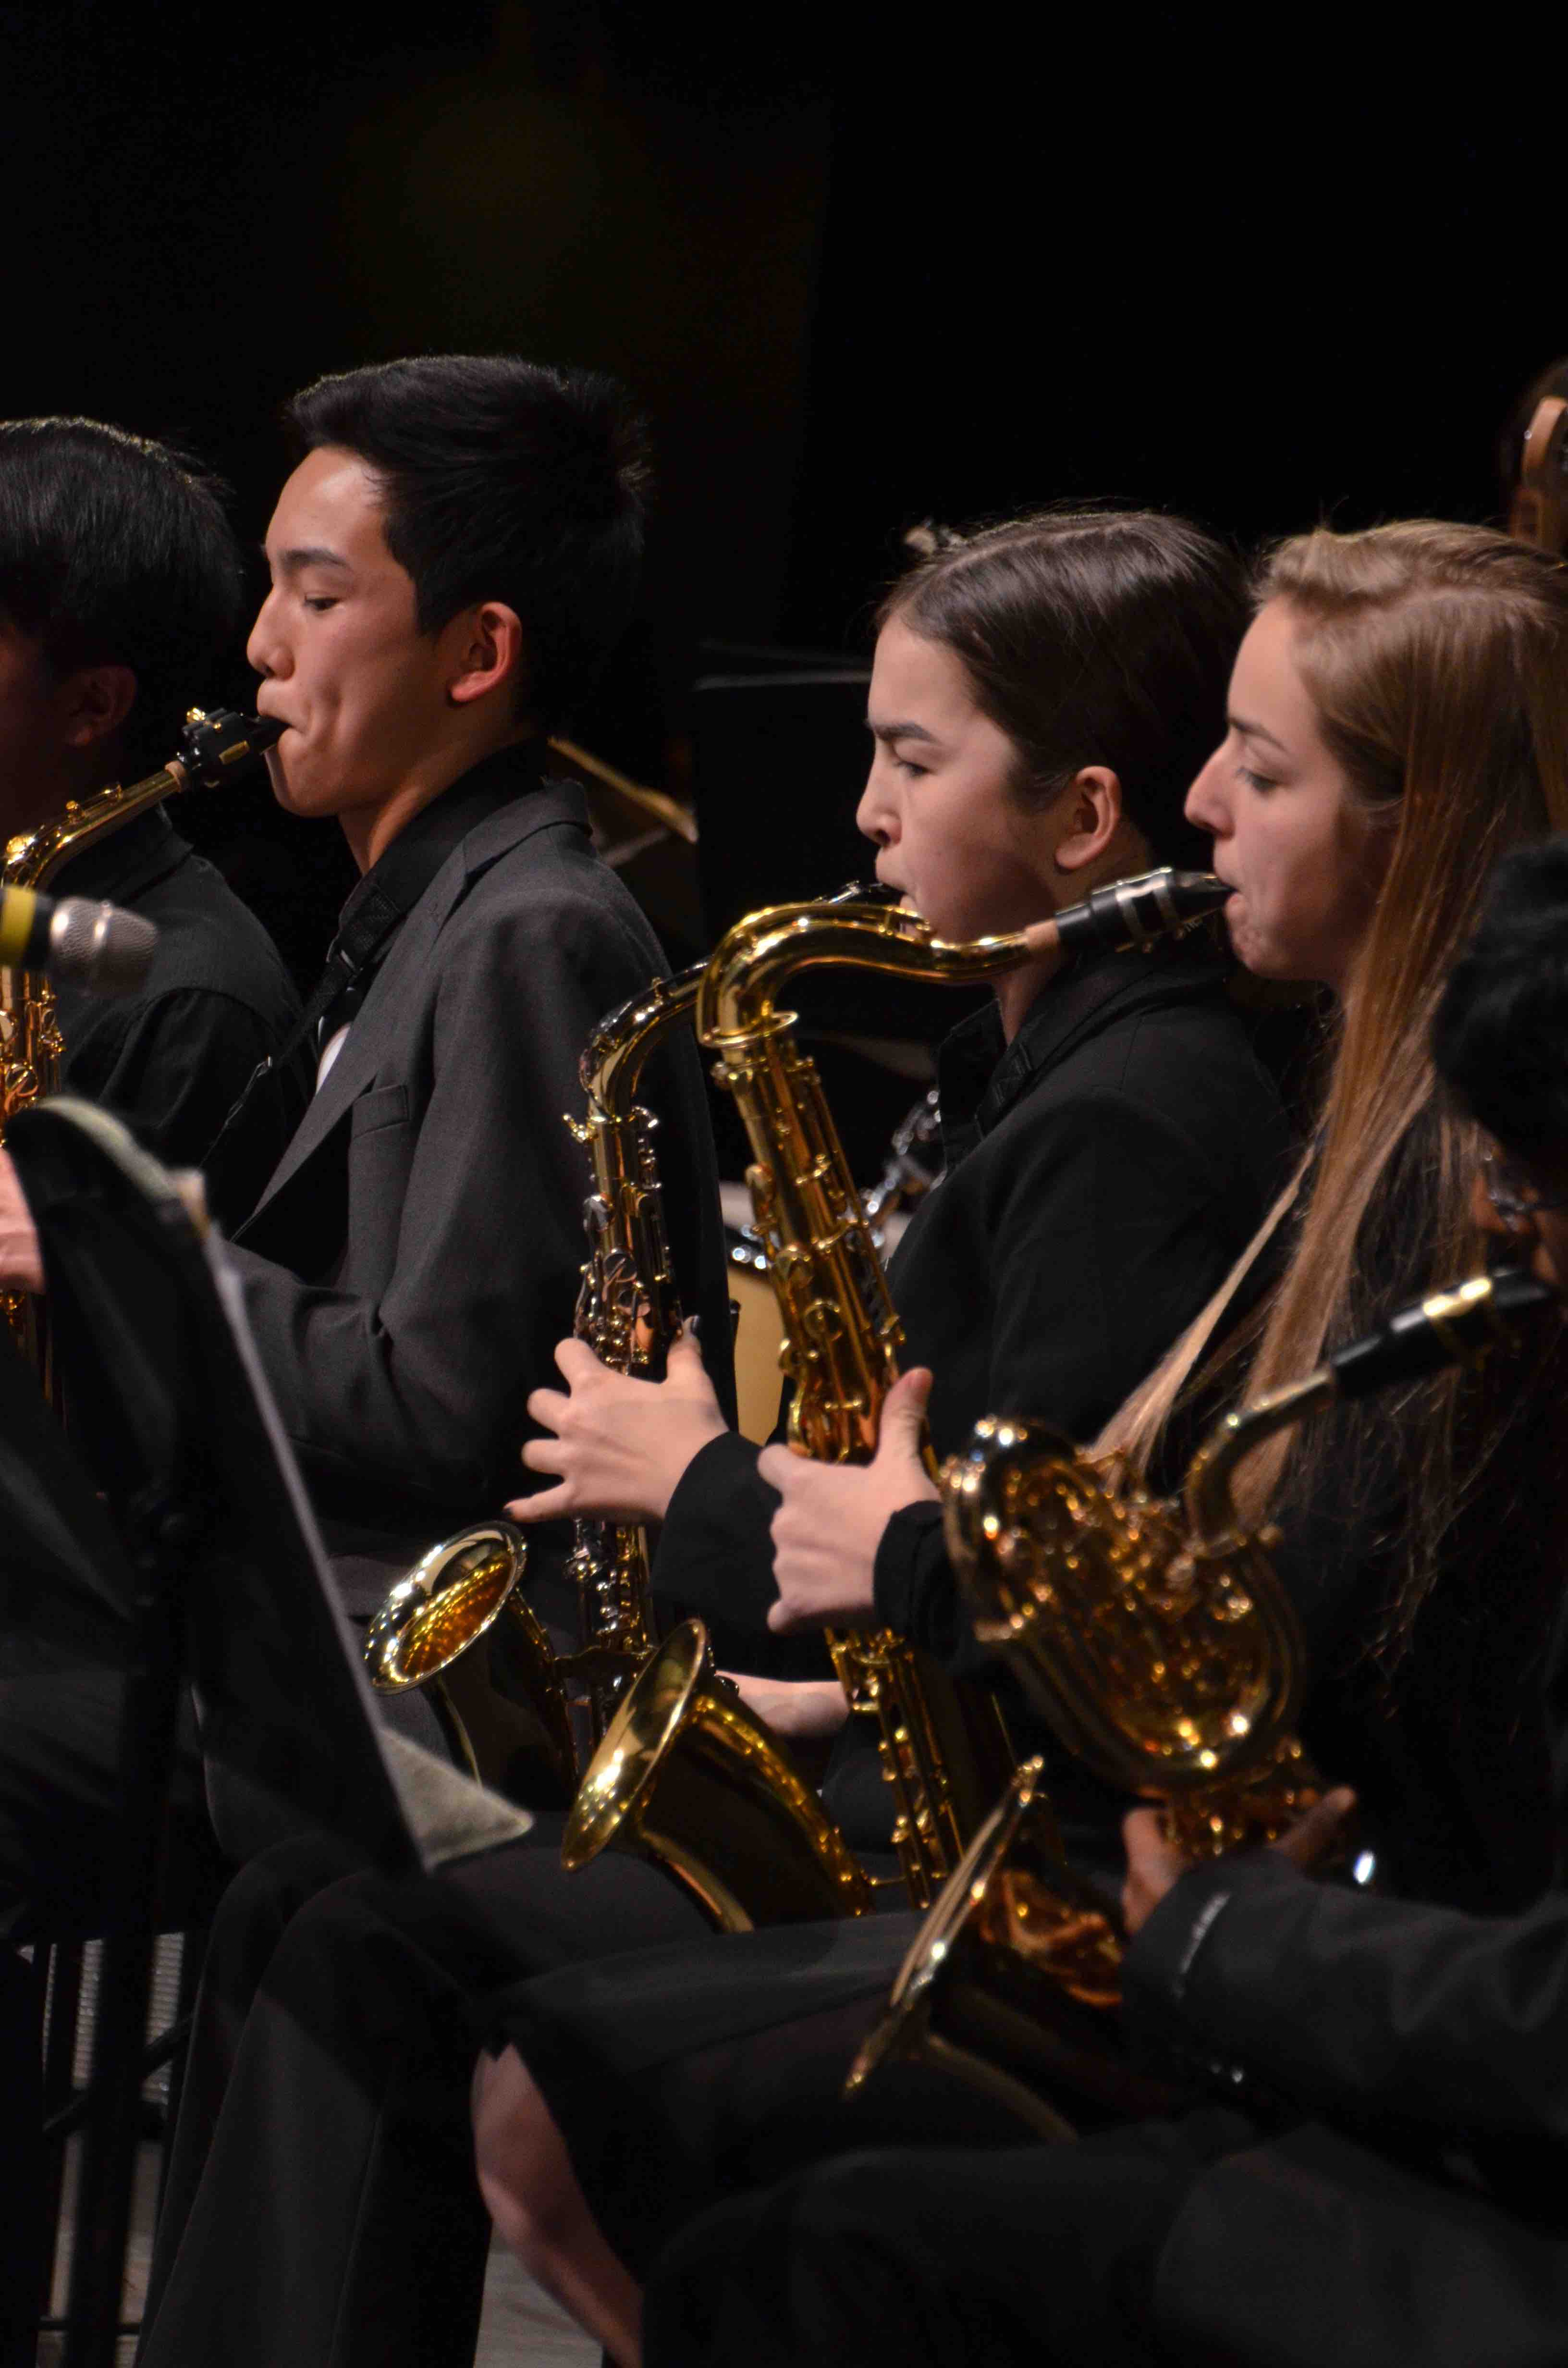 Students+play+saxophone+as+members+of+the+upper+school+Jazz+Band.+The+Winter+Concert+took+place+on+January+13+at+the+Mexican+Heritage+Theater.